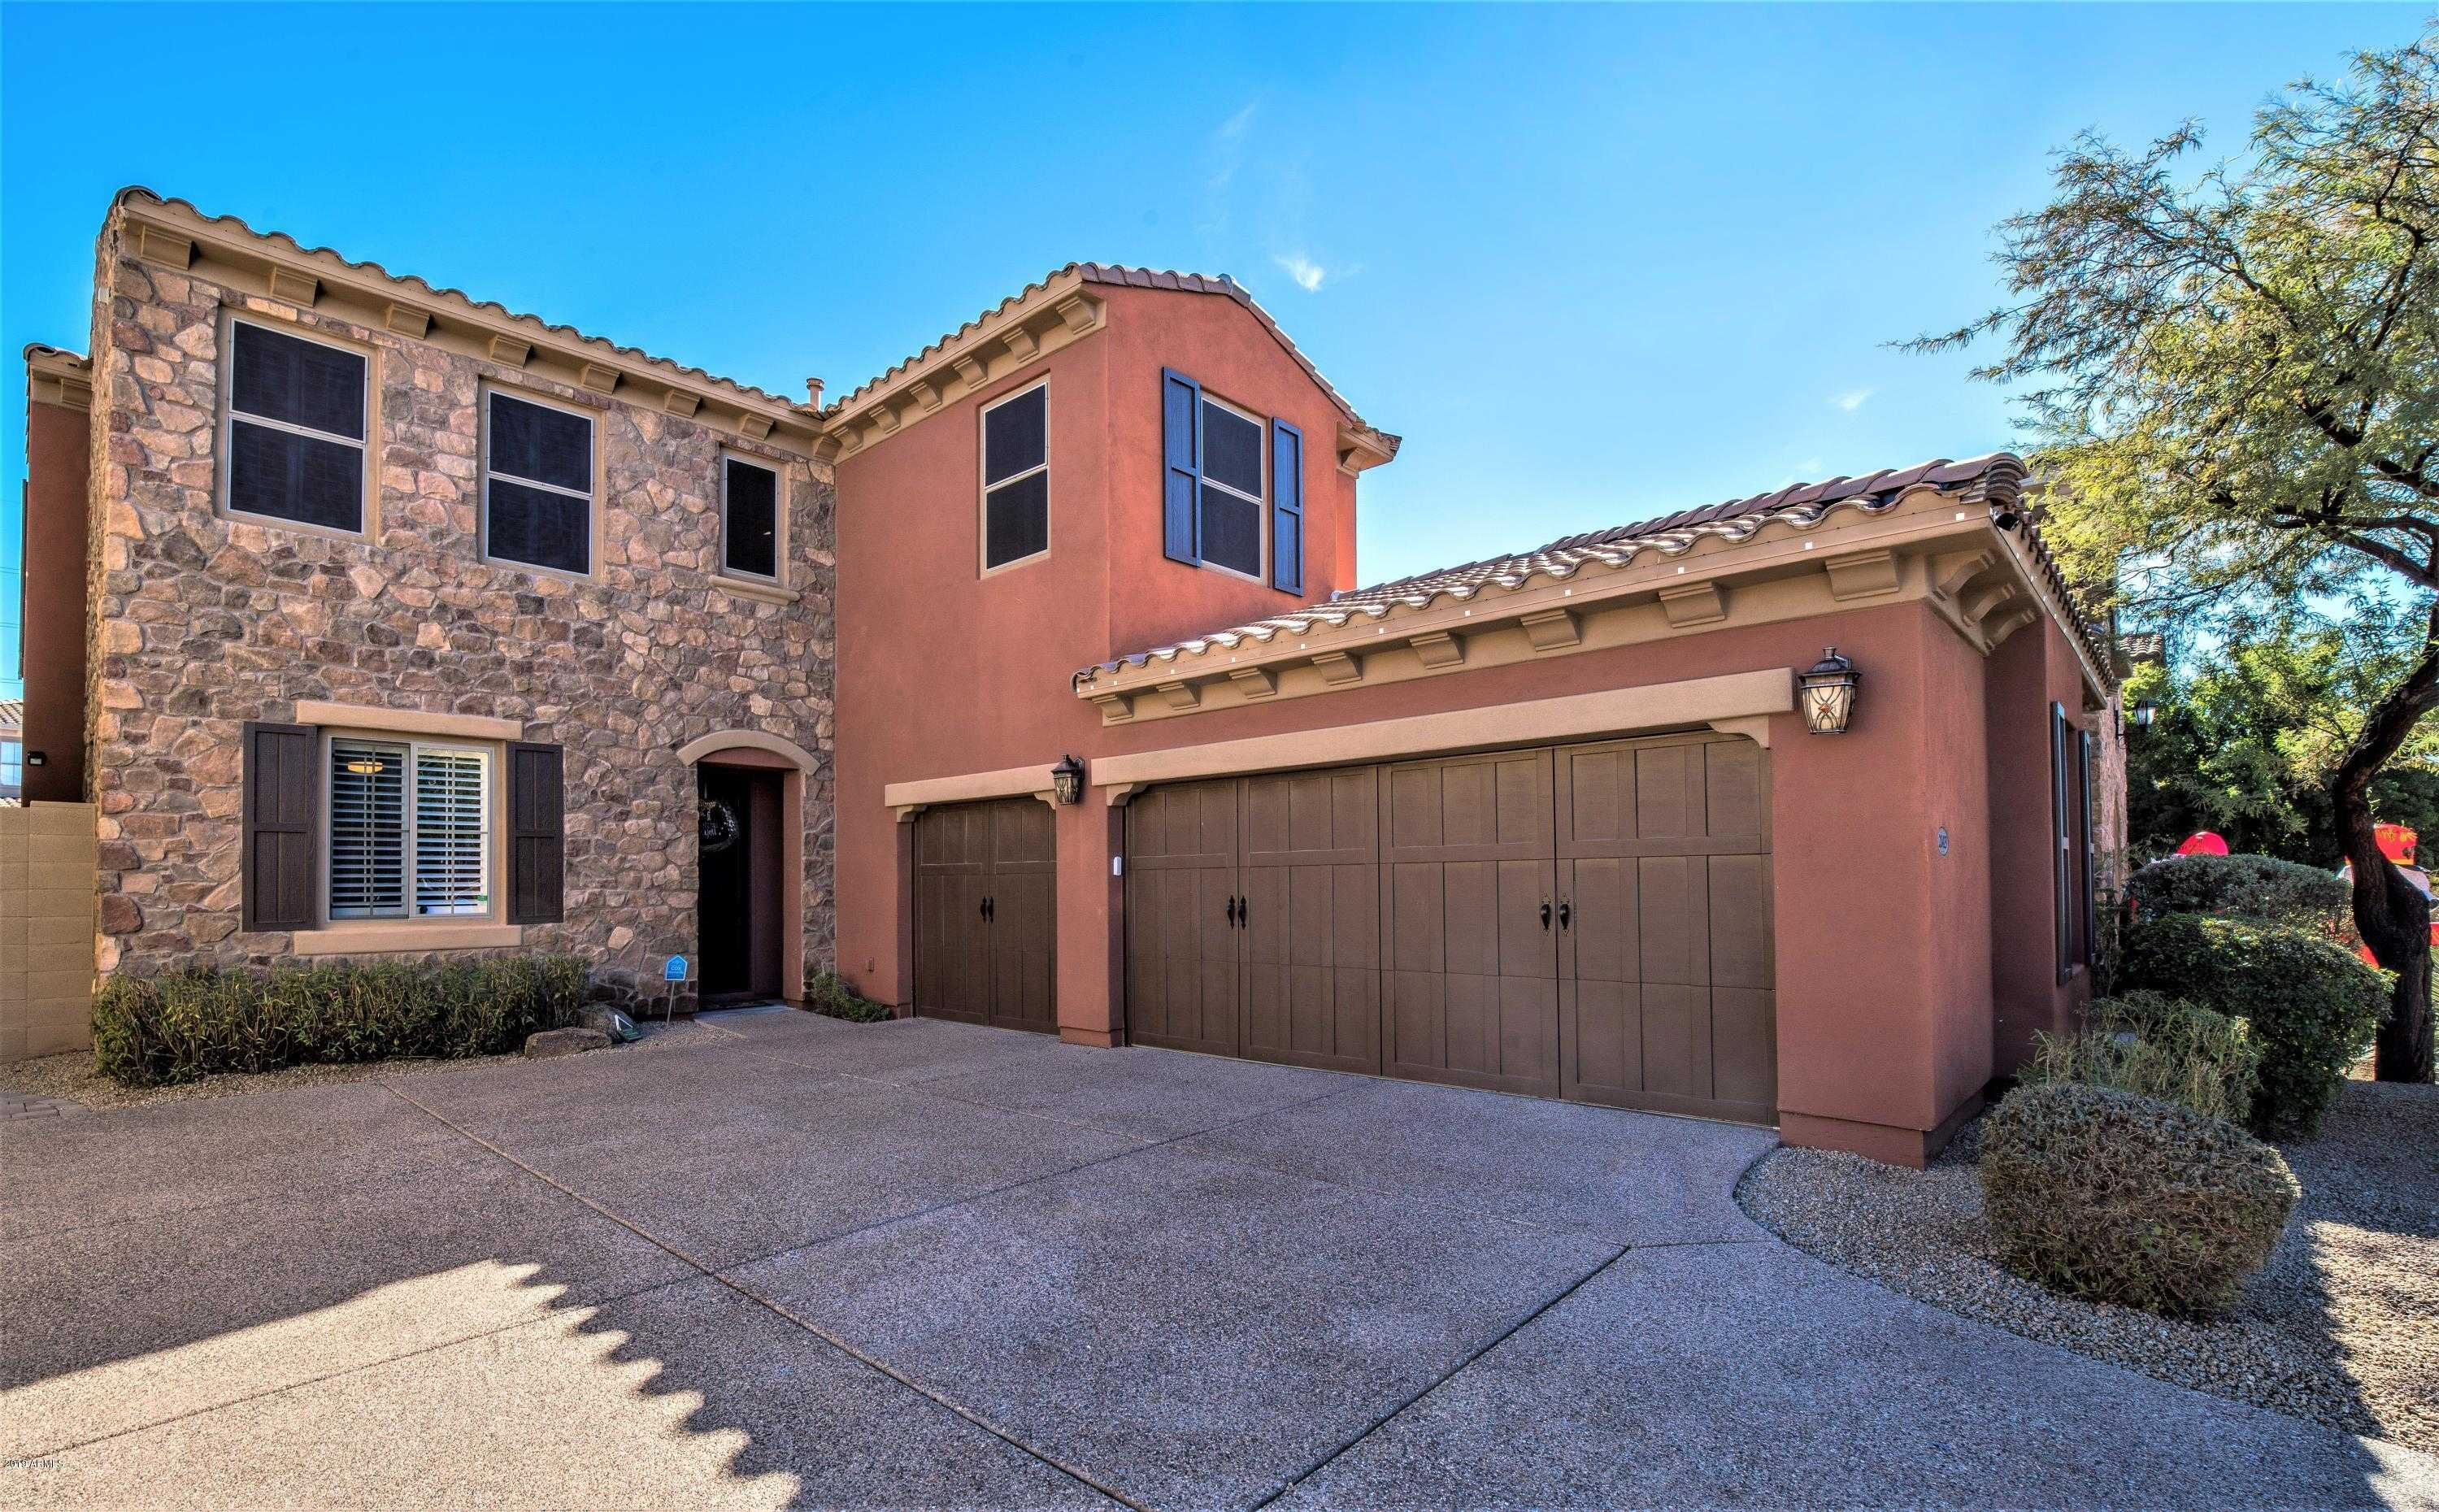 $637,000 - 4Br/3Ba - Home for Sale in Village 12 At Aviano, Phoenix